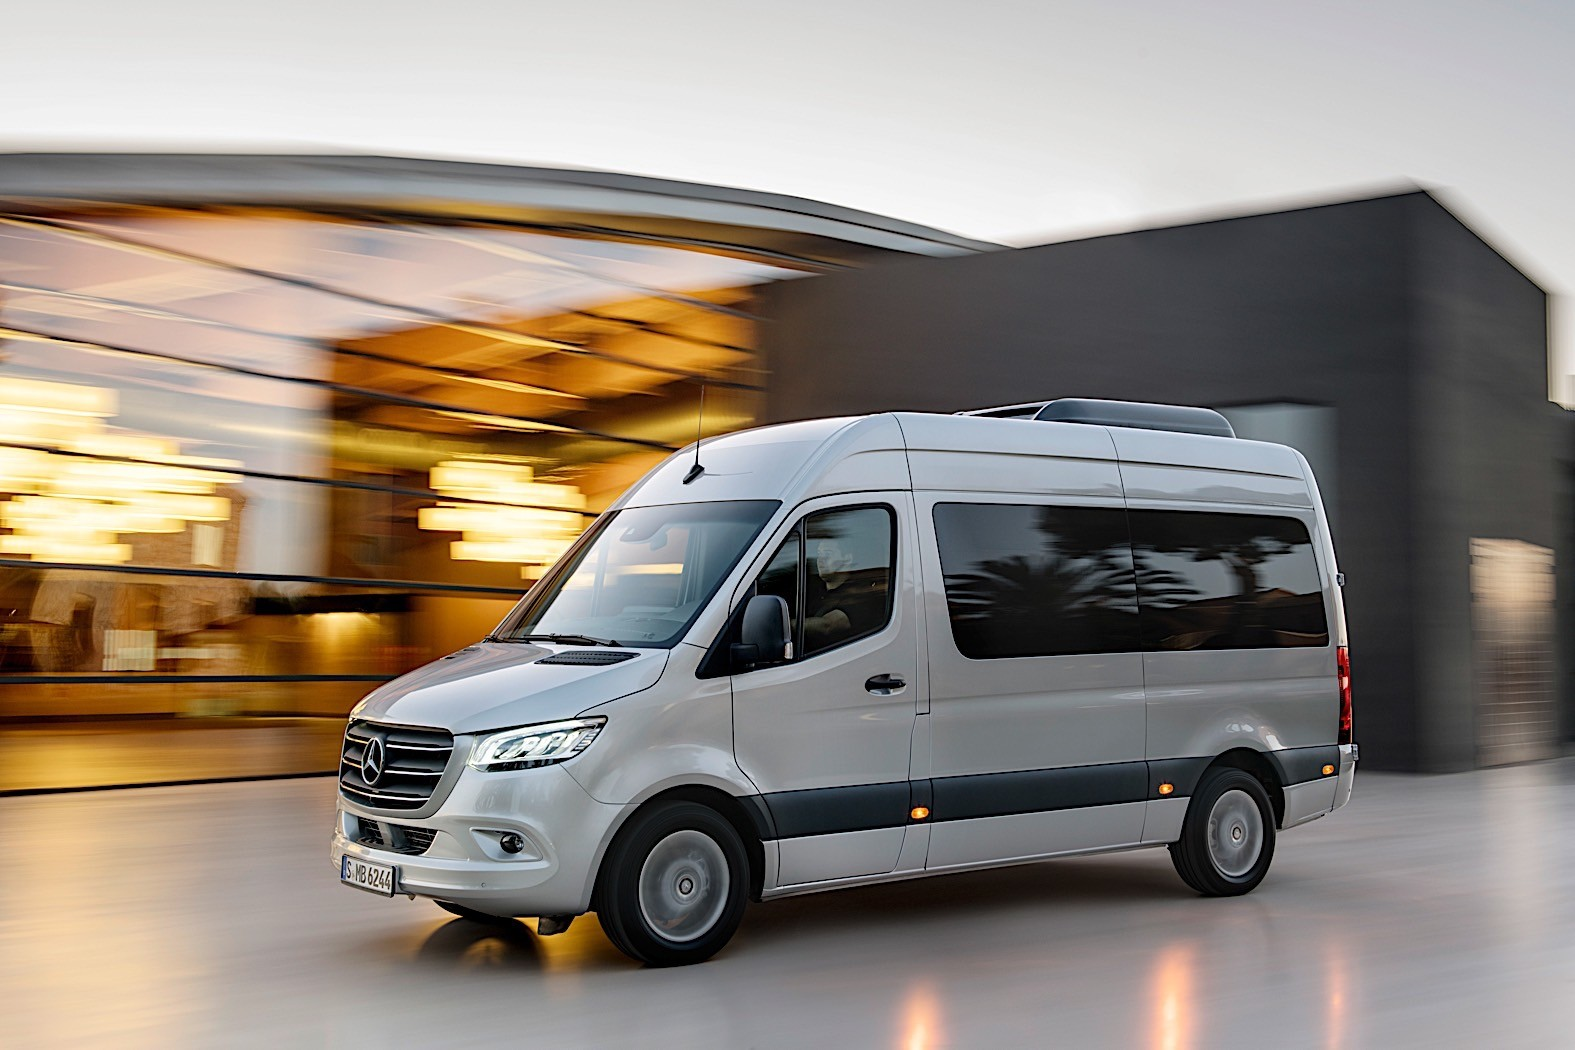 Mercedes benz sprinter based rv reviewed by autoblog for Mercedes benz sprinter camper van